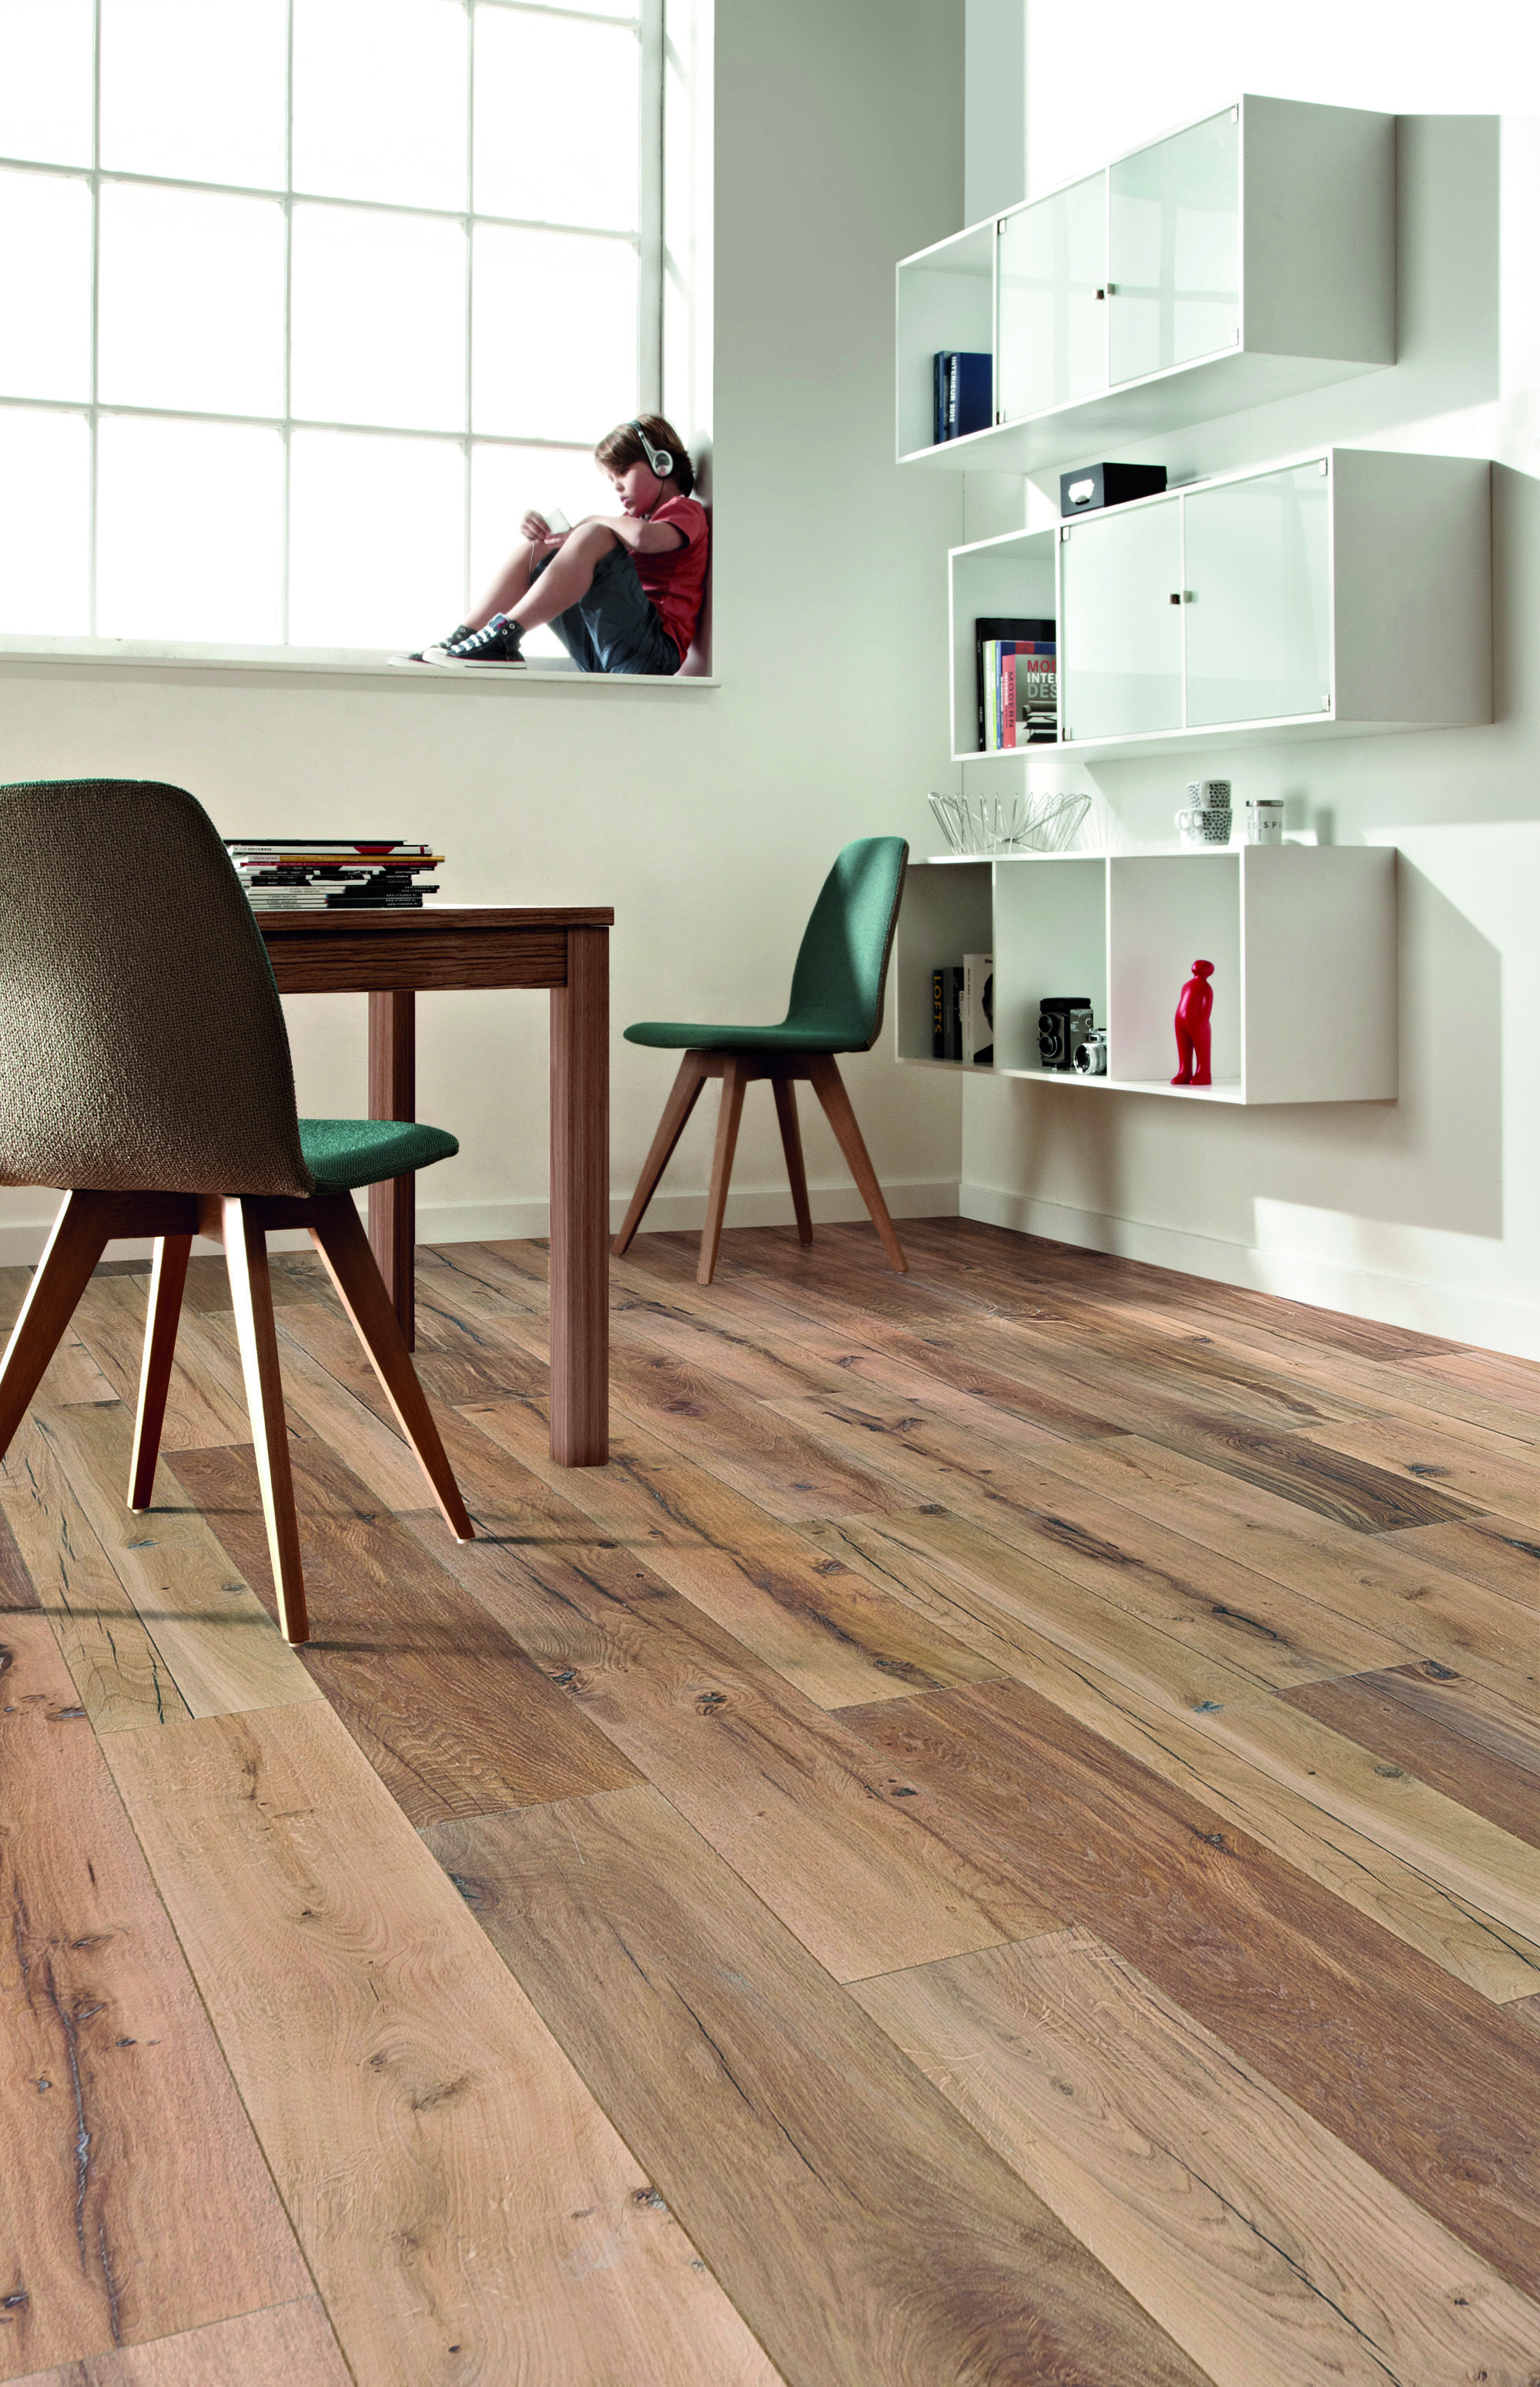 This Vinyl Plank Flooring Looks Good And Is Very Hard Wearing And Eco  Friendly. #